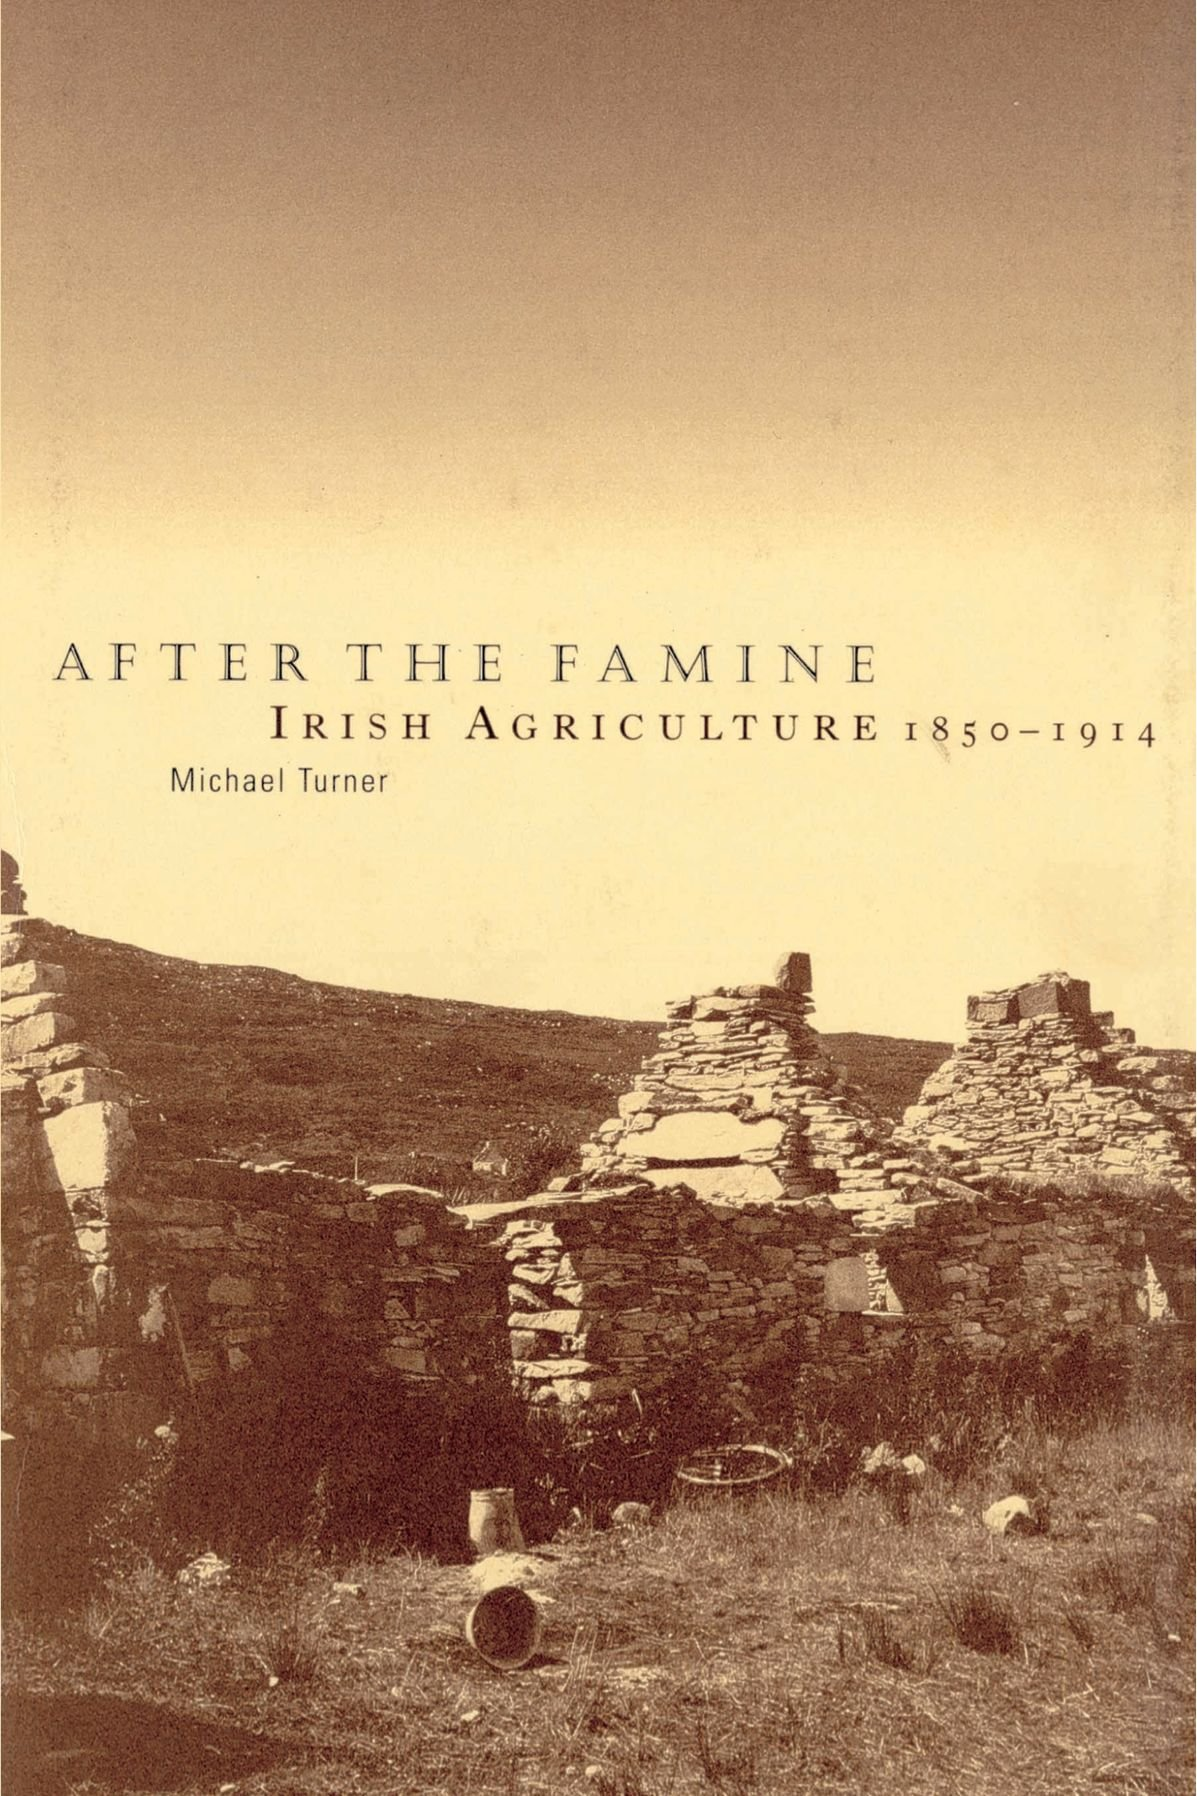 After the Famine: Irish Agriculture, 1850-1914 pdf